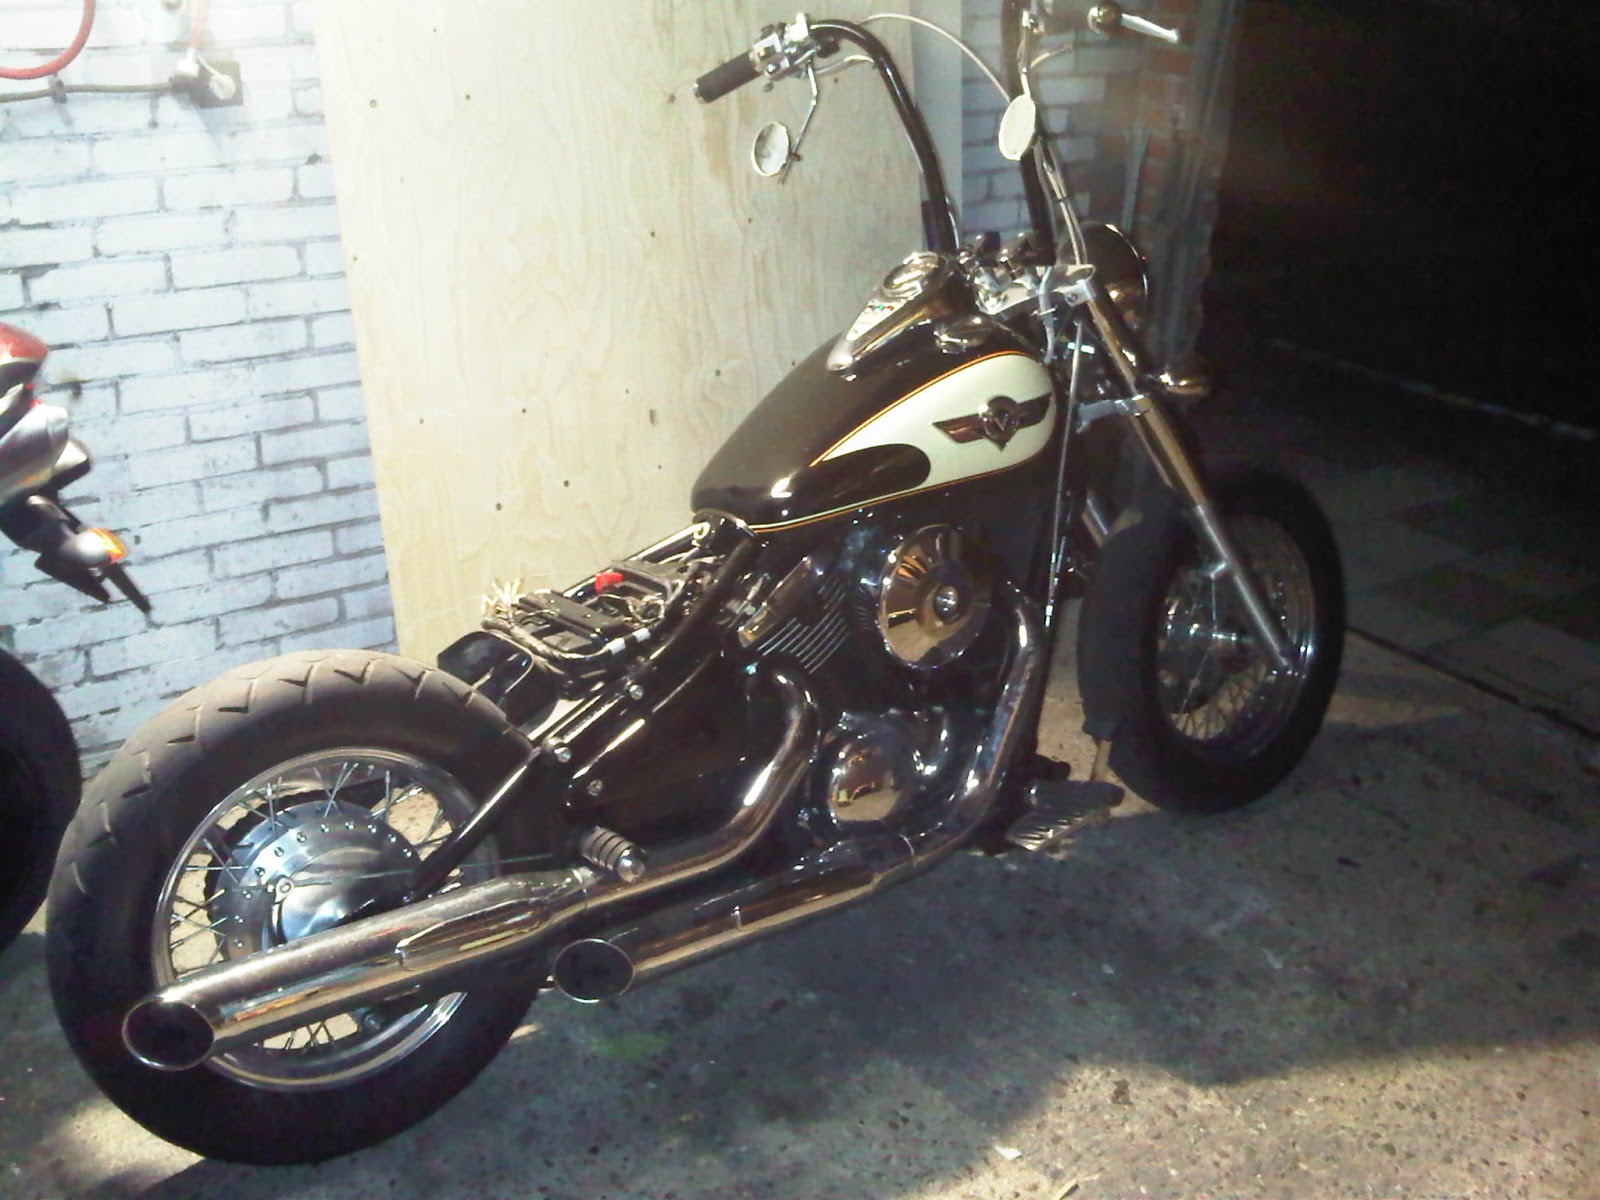 Td chopperparts gimp style apehanger angelo w for Html td style